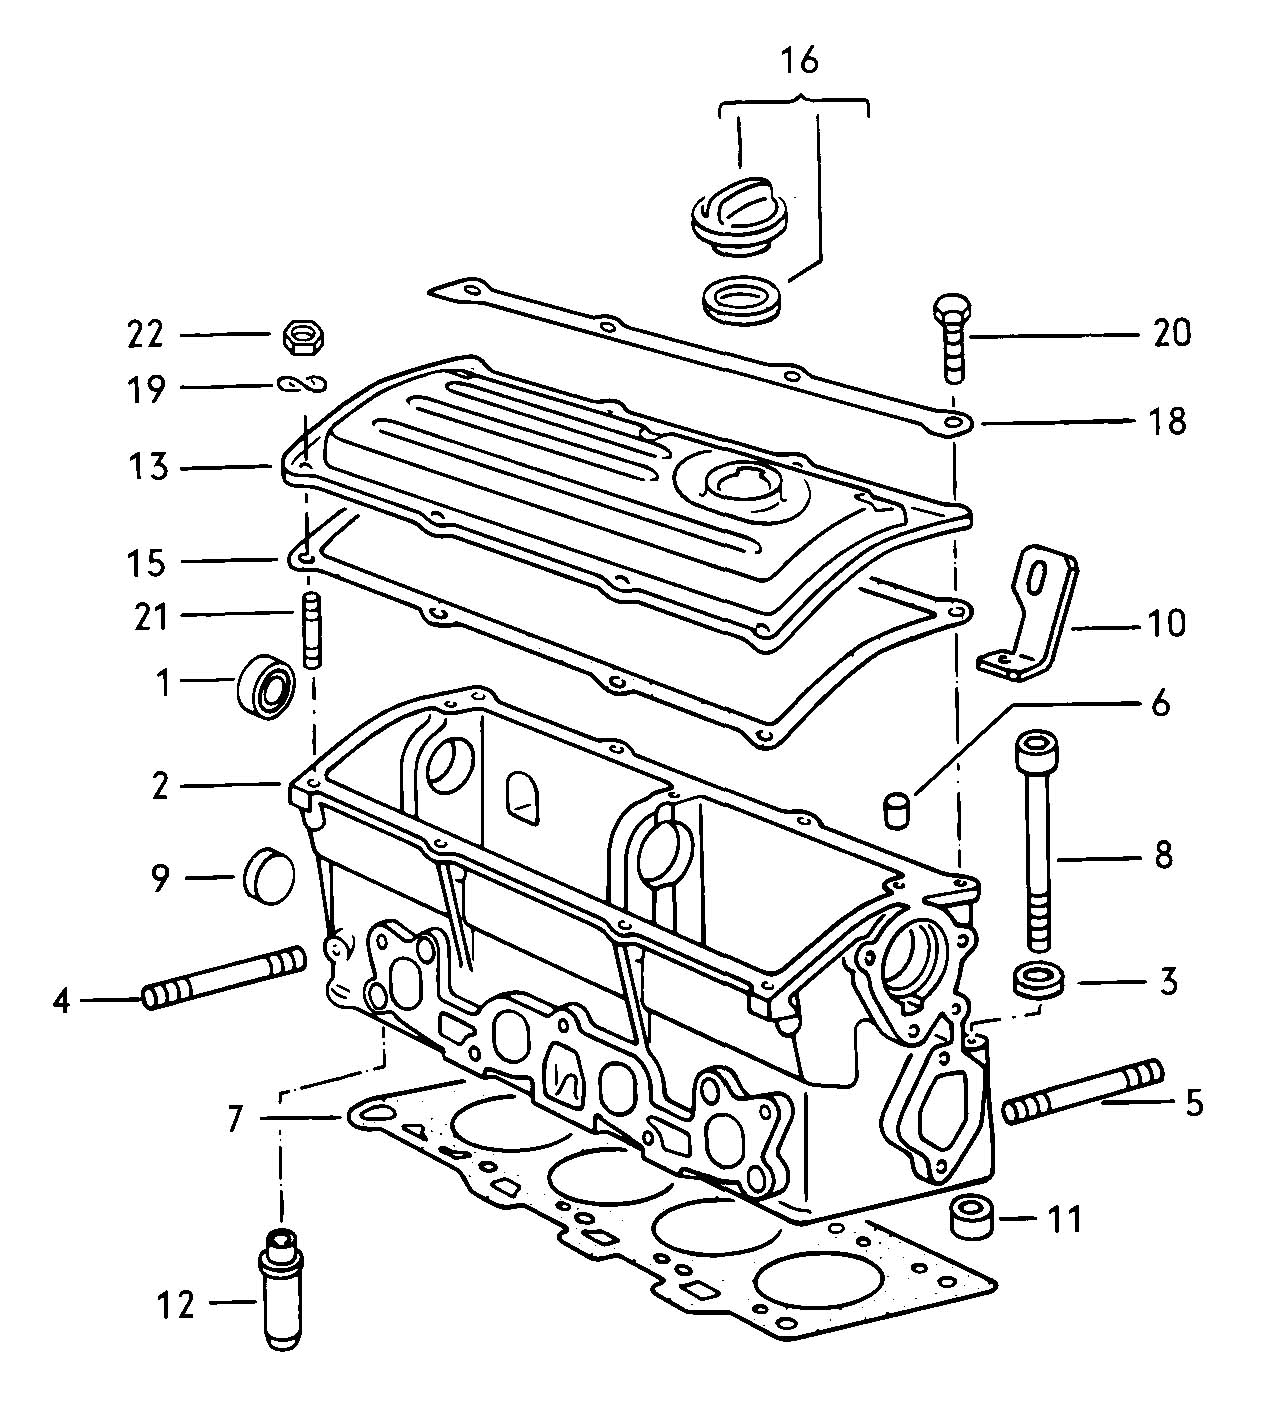 82 Chevy Truck S10 Engine Wiring Diagram